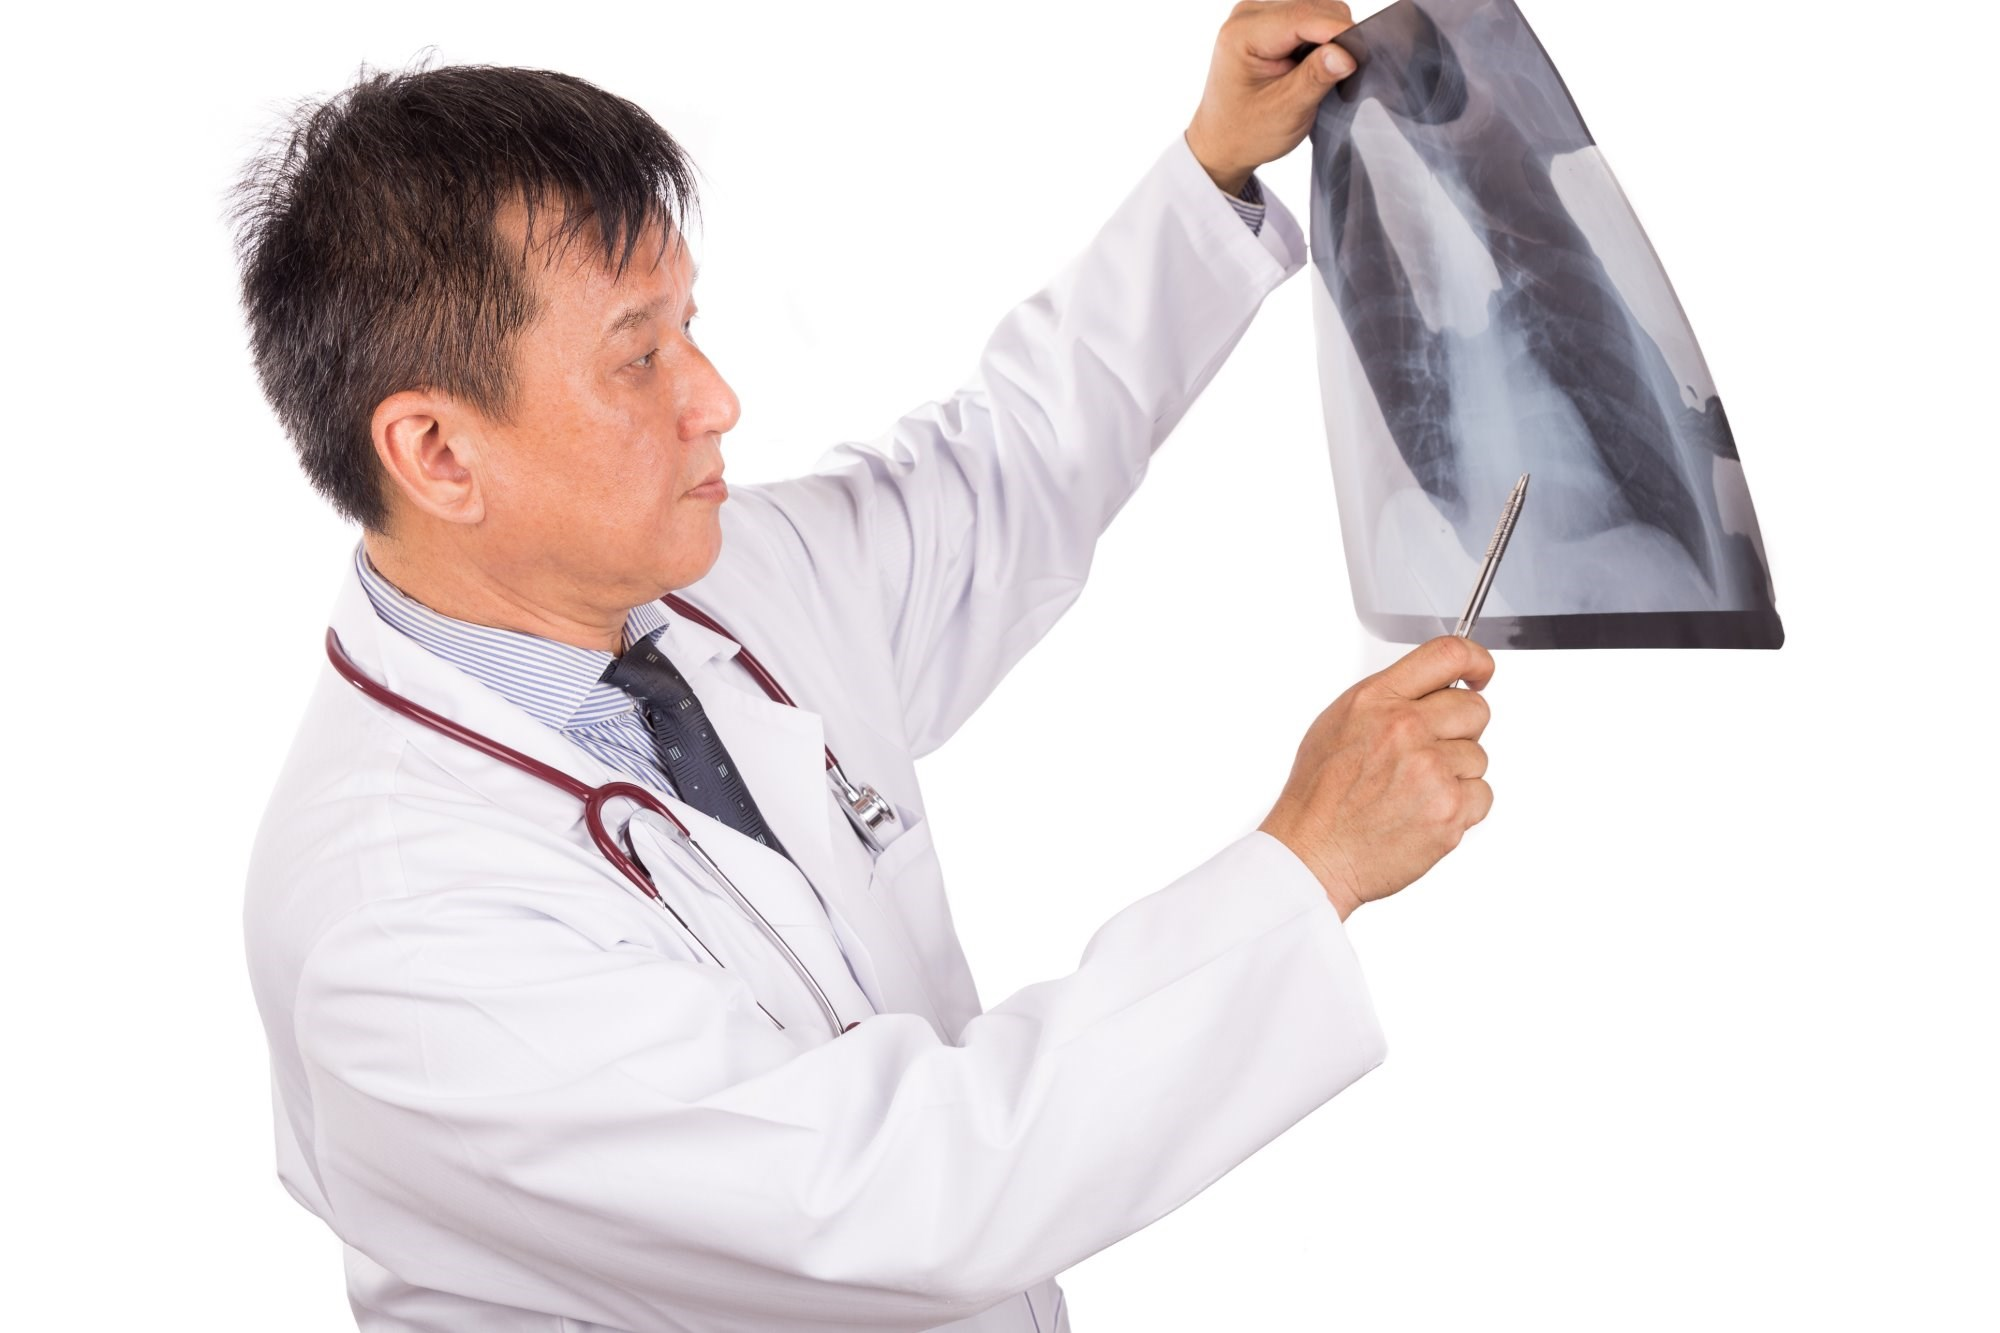 Findings in patients treated for T1a renal cell carcinoma followed with X-ray surveillance.